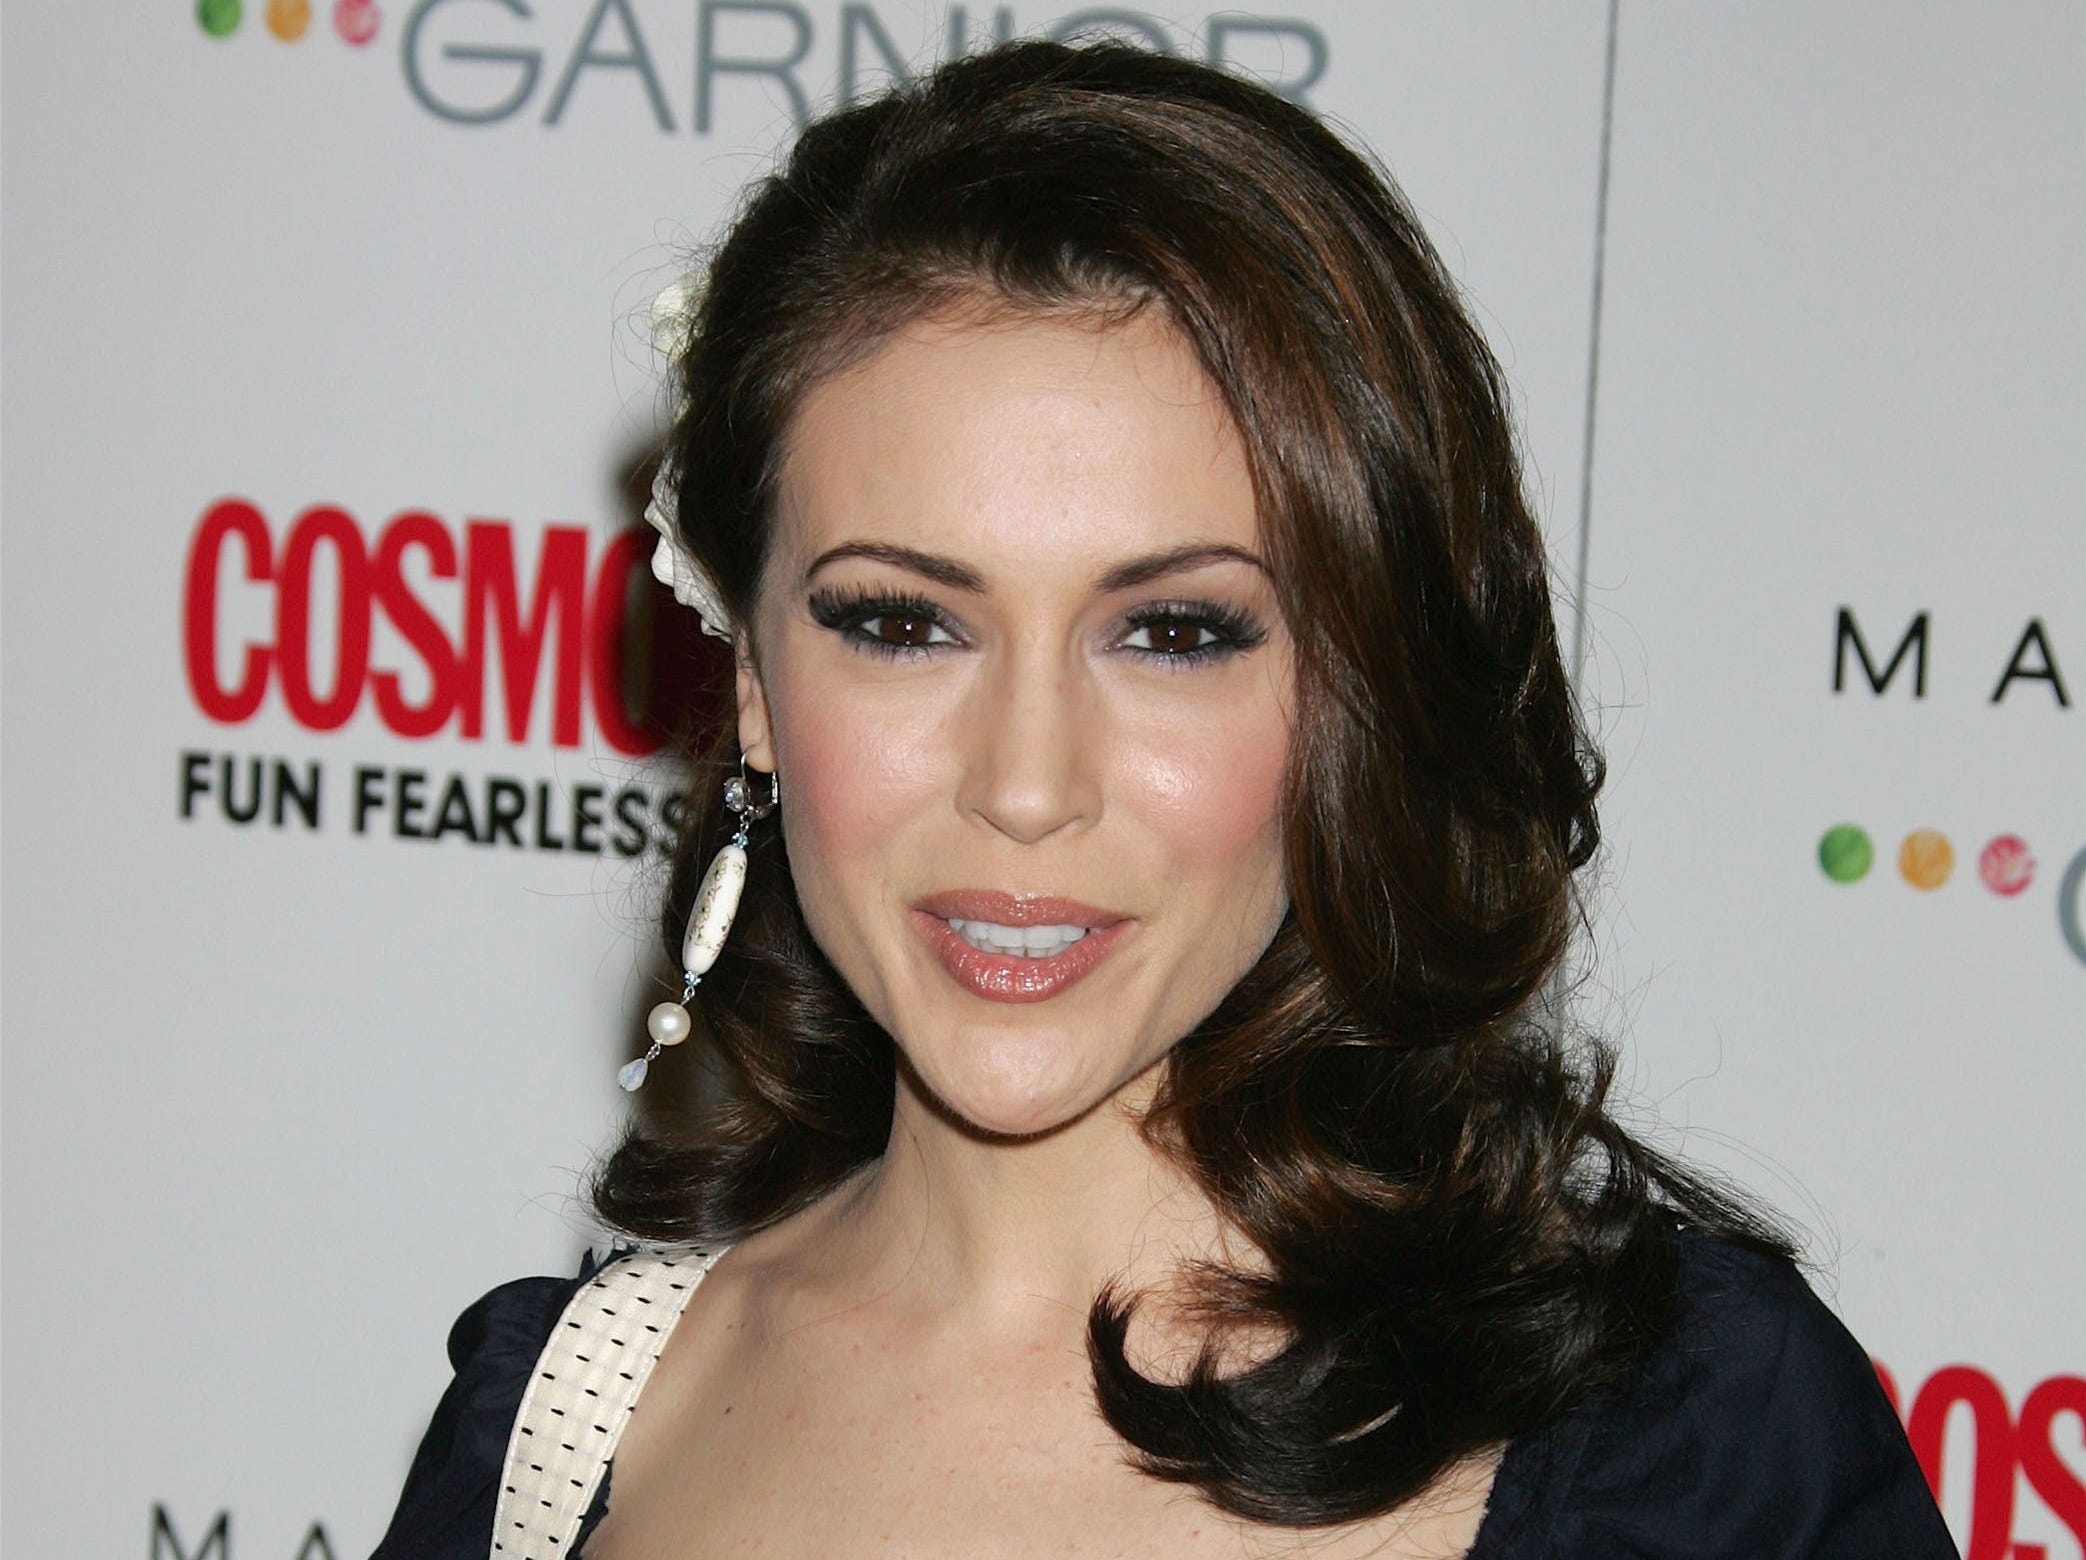 HOLLYWOOD - FEBRUARY 13:  Actress Alyssa Milano poses at Cosmopolitan Magazine's celebration honoring actor Patrick Dempsey as Fun Fearless Male of the Year at the Day After Nightclub on February 13, 2006 in Hollywood, California. (Photo by David Livingston/Getty Images) *** Local Caption *** Alyssa Milano ORG XMIT: 56798650 GTY ID: 98650DL064_Cosmo_Arrive